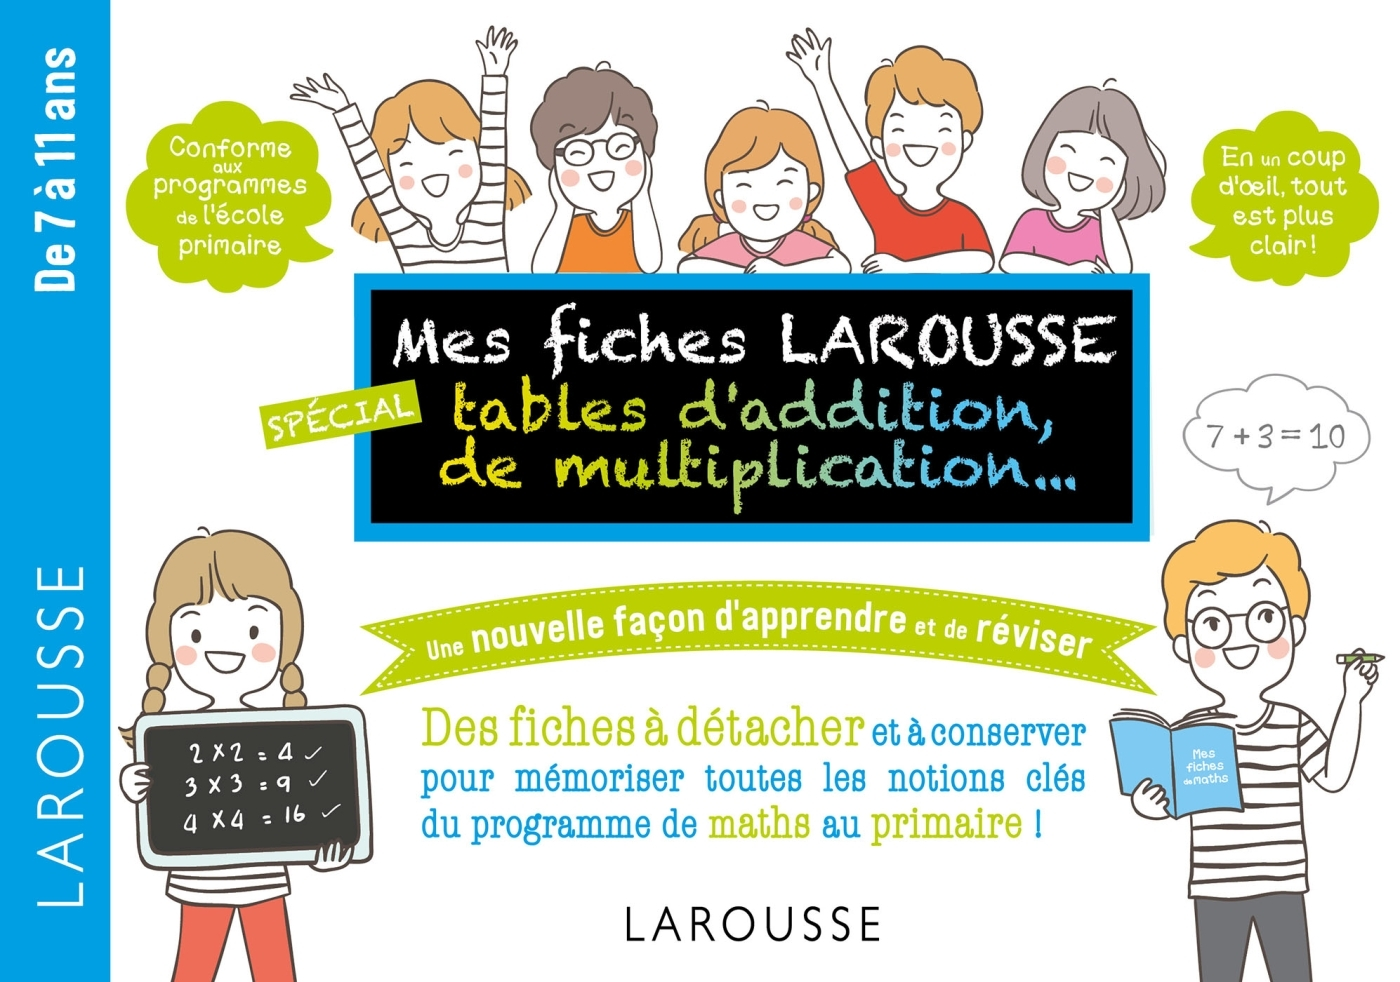 MES FICHES LAROUSSE, SPECIALES ADDITIONS, MULTIPLICATIONS, ...